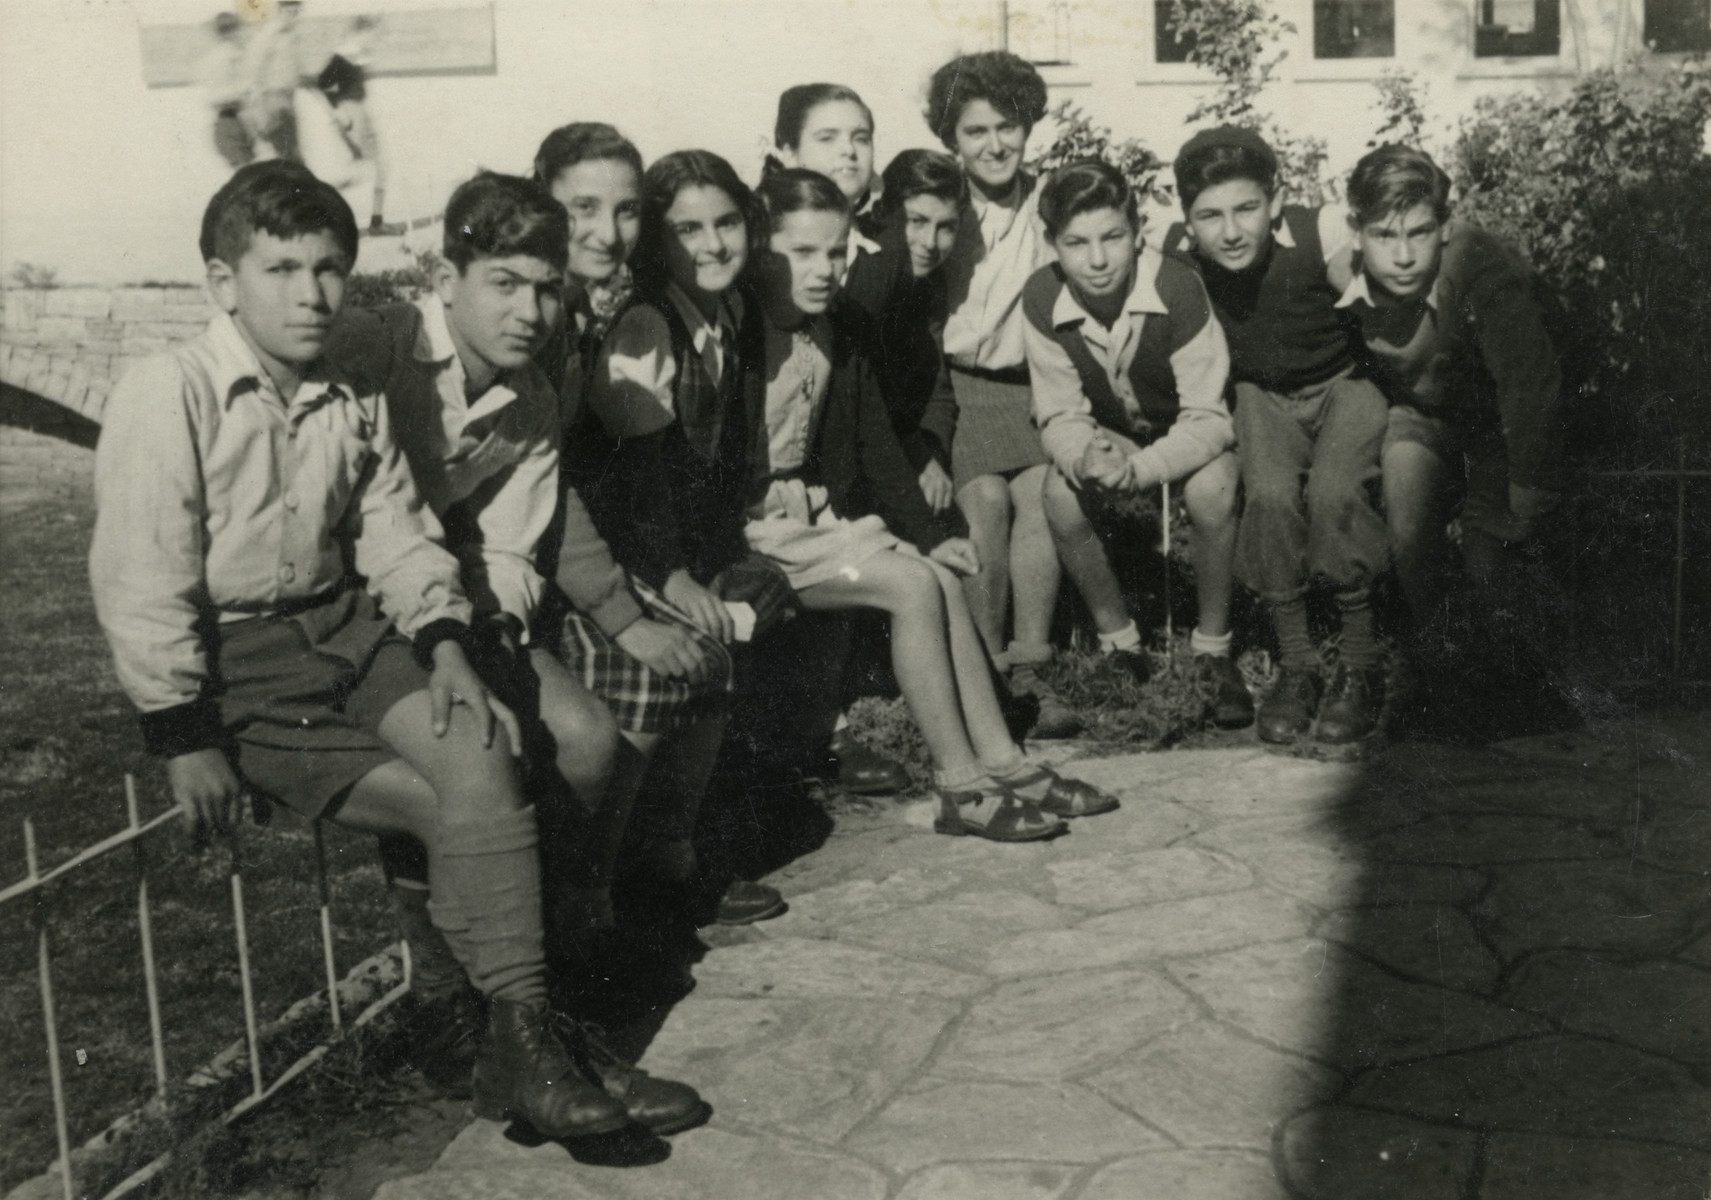 Nadia Cohen (with short hair) poses with the children that she is taking care of in settlement.